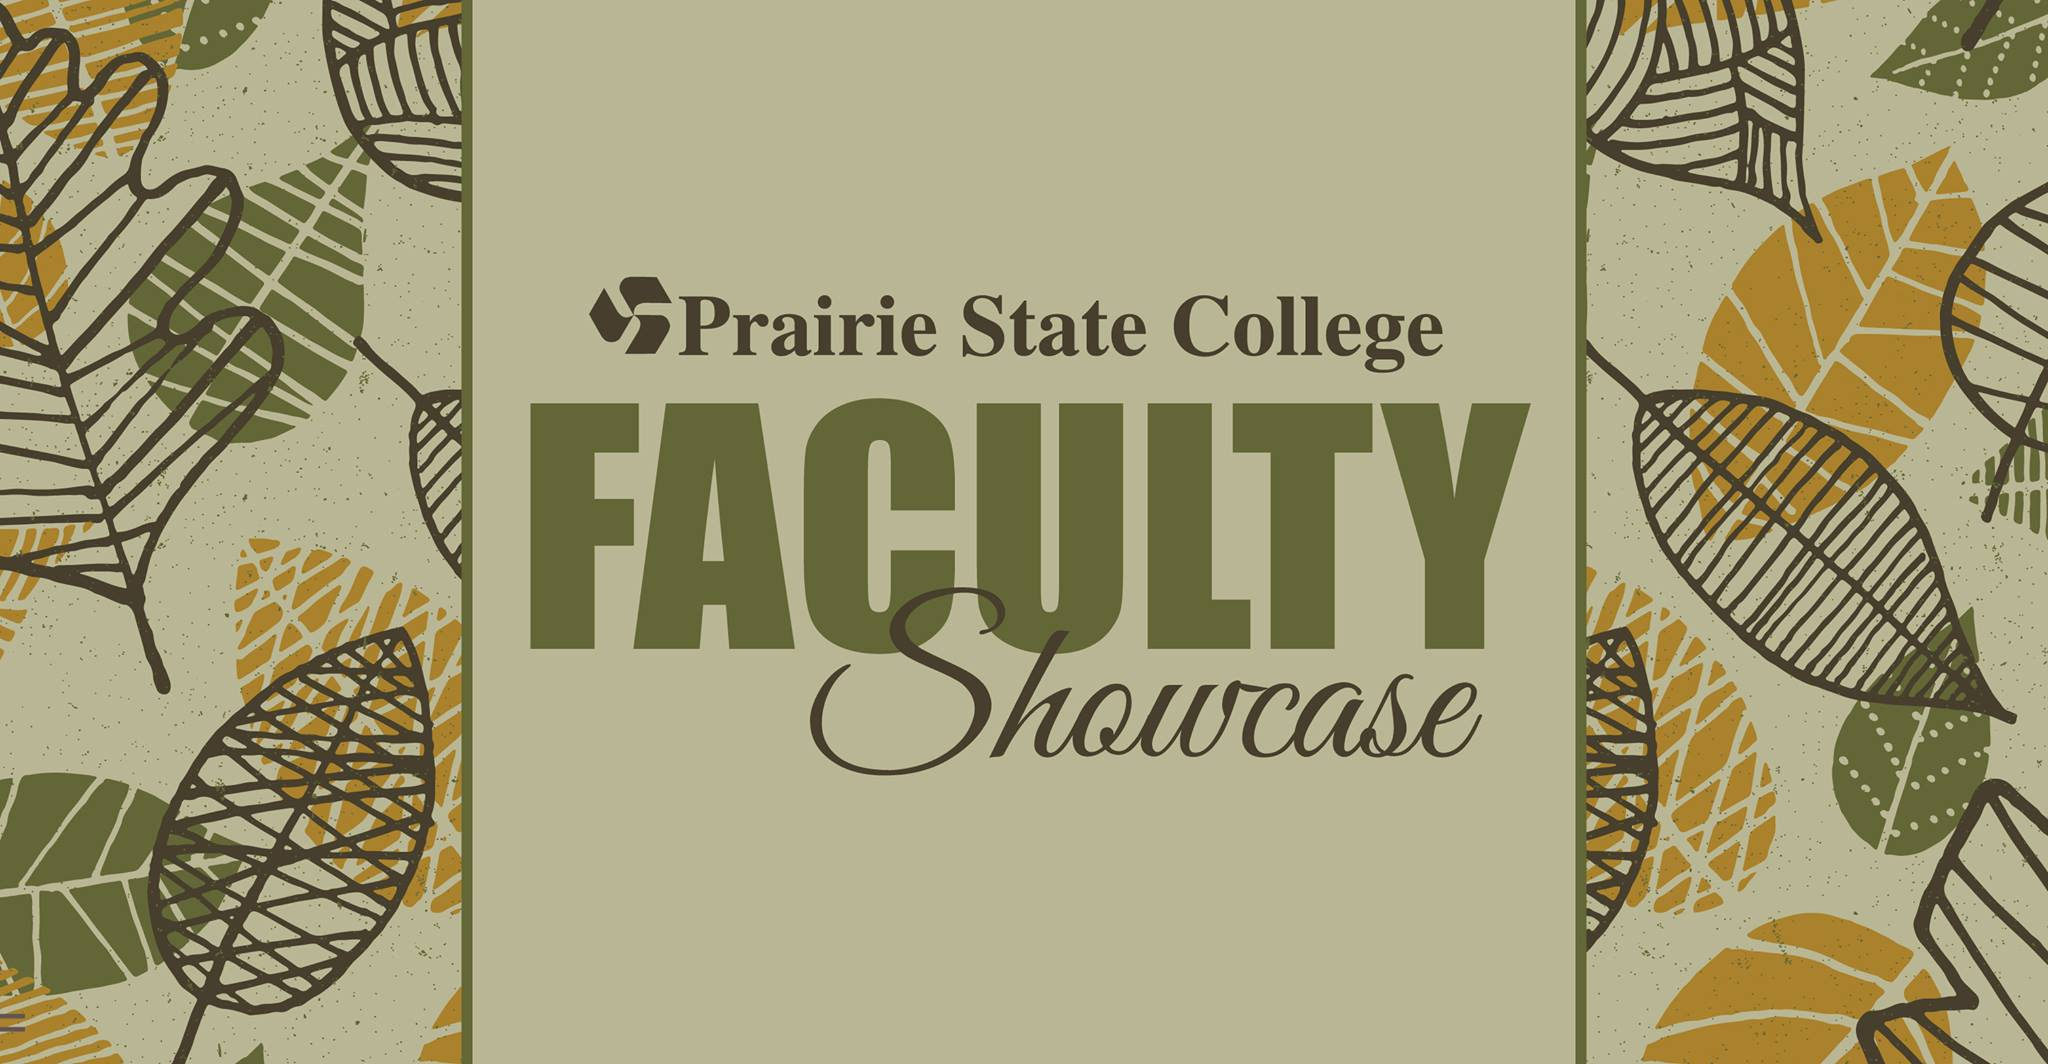 PSC Hosting Faculty Showcase Highlighting Two Outstanding Faculty Members